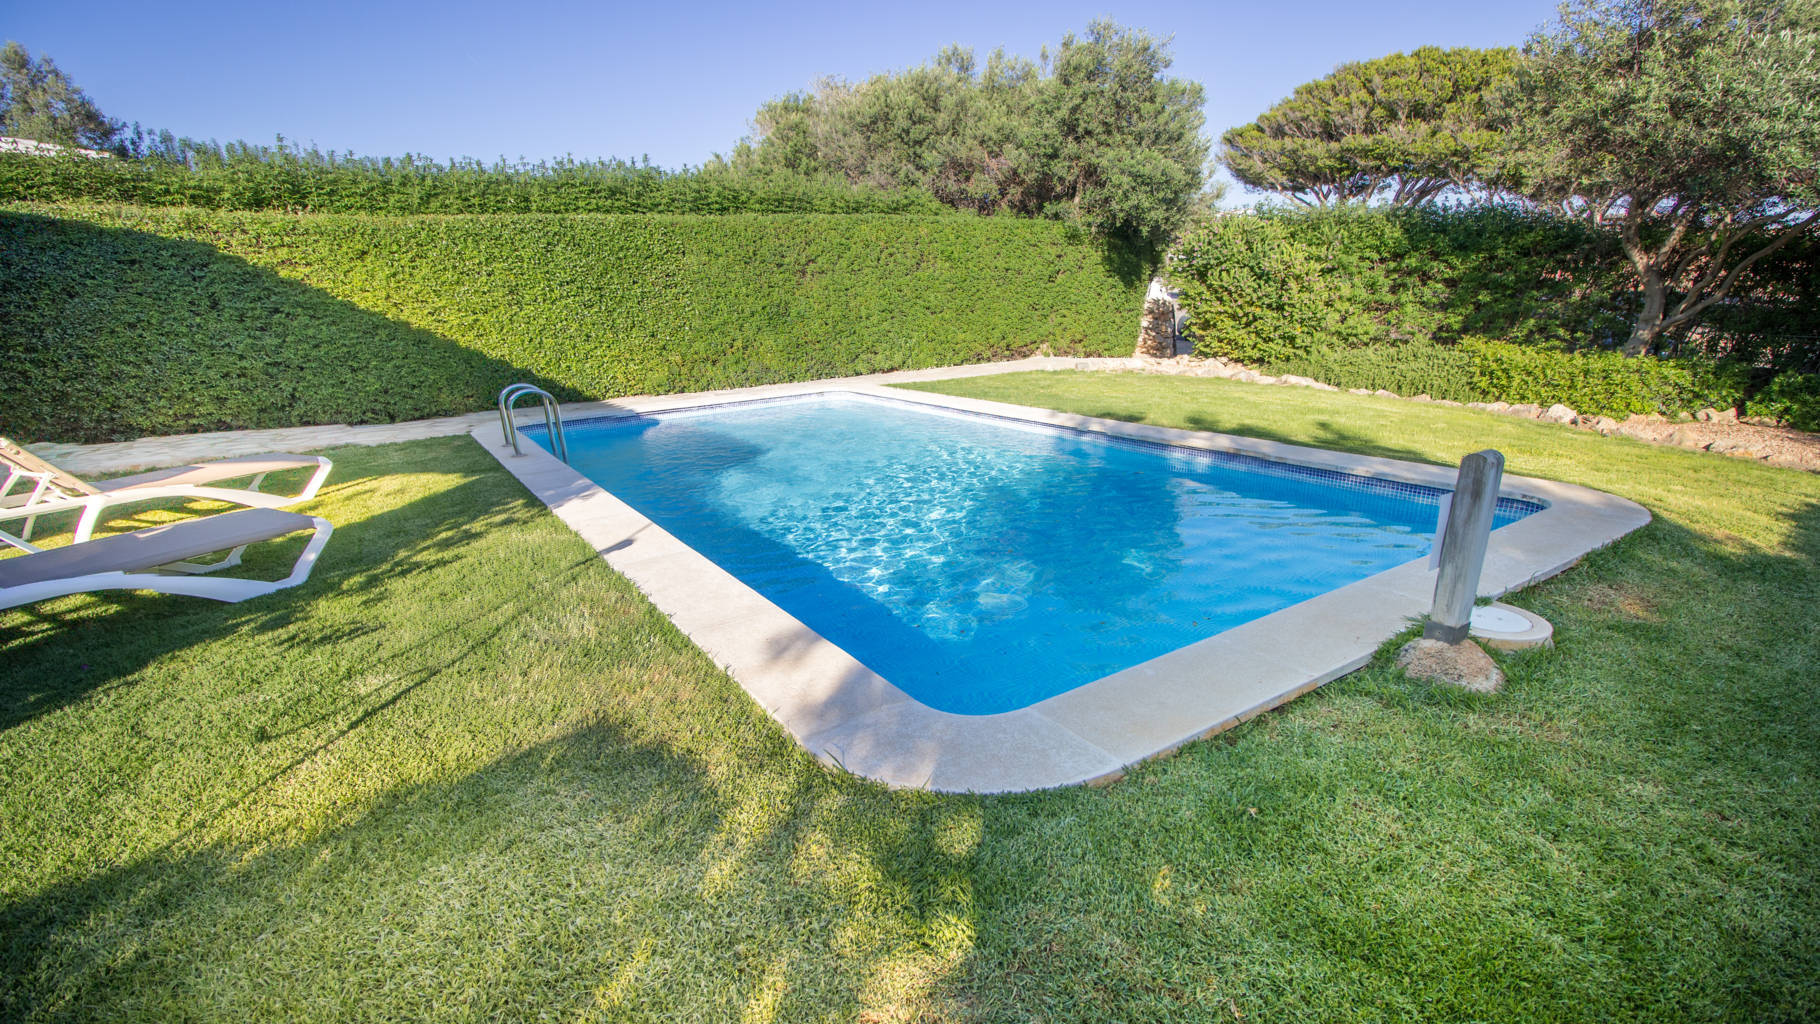 House for sale with pool and garden in Biniancolla